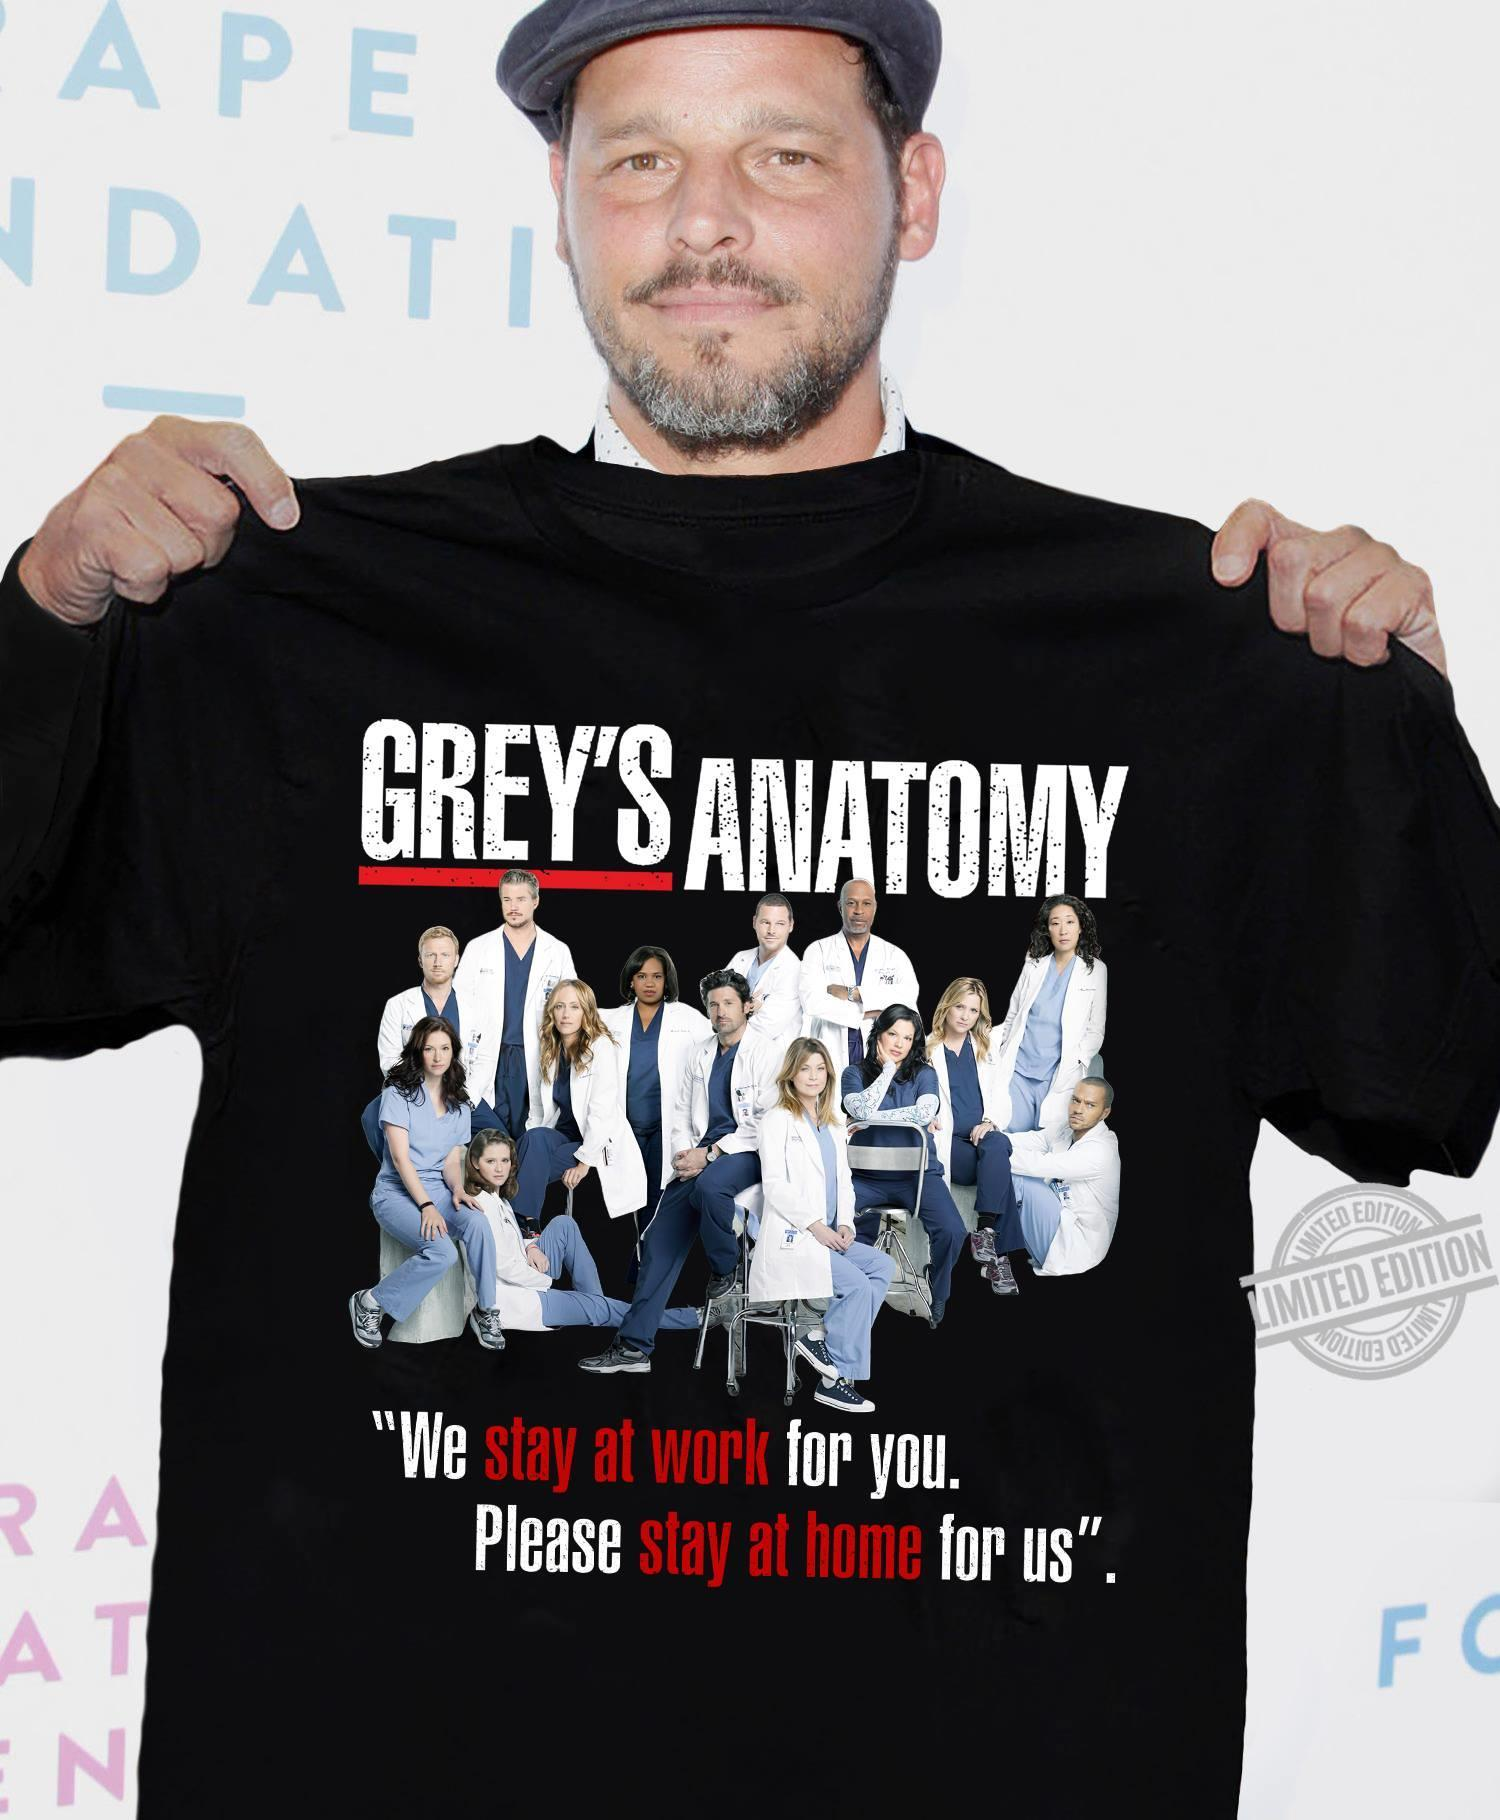 Grey's Anatomy We Stay At Work For You Please Stay At Home For Us Shirt